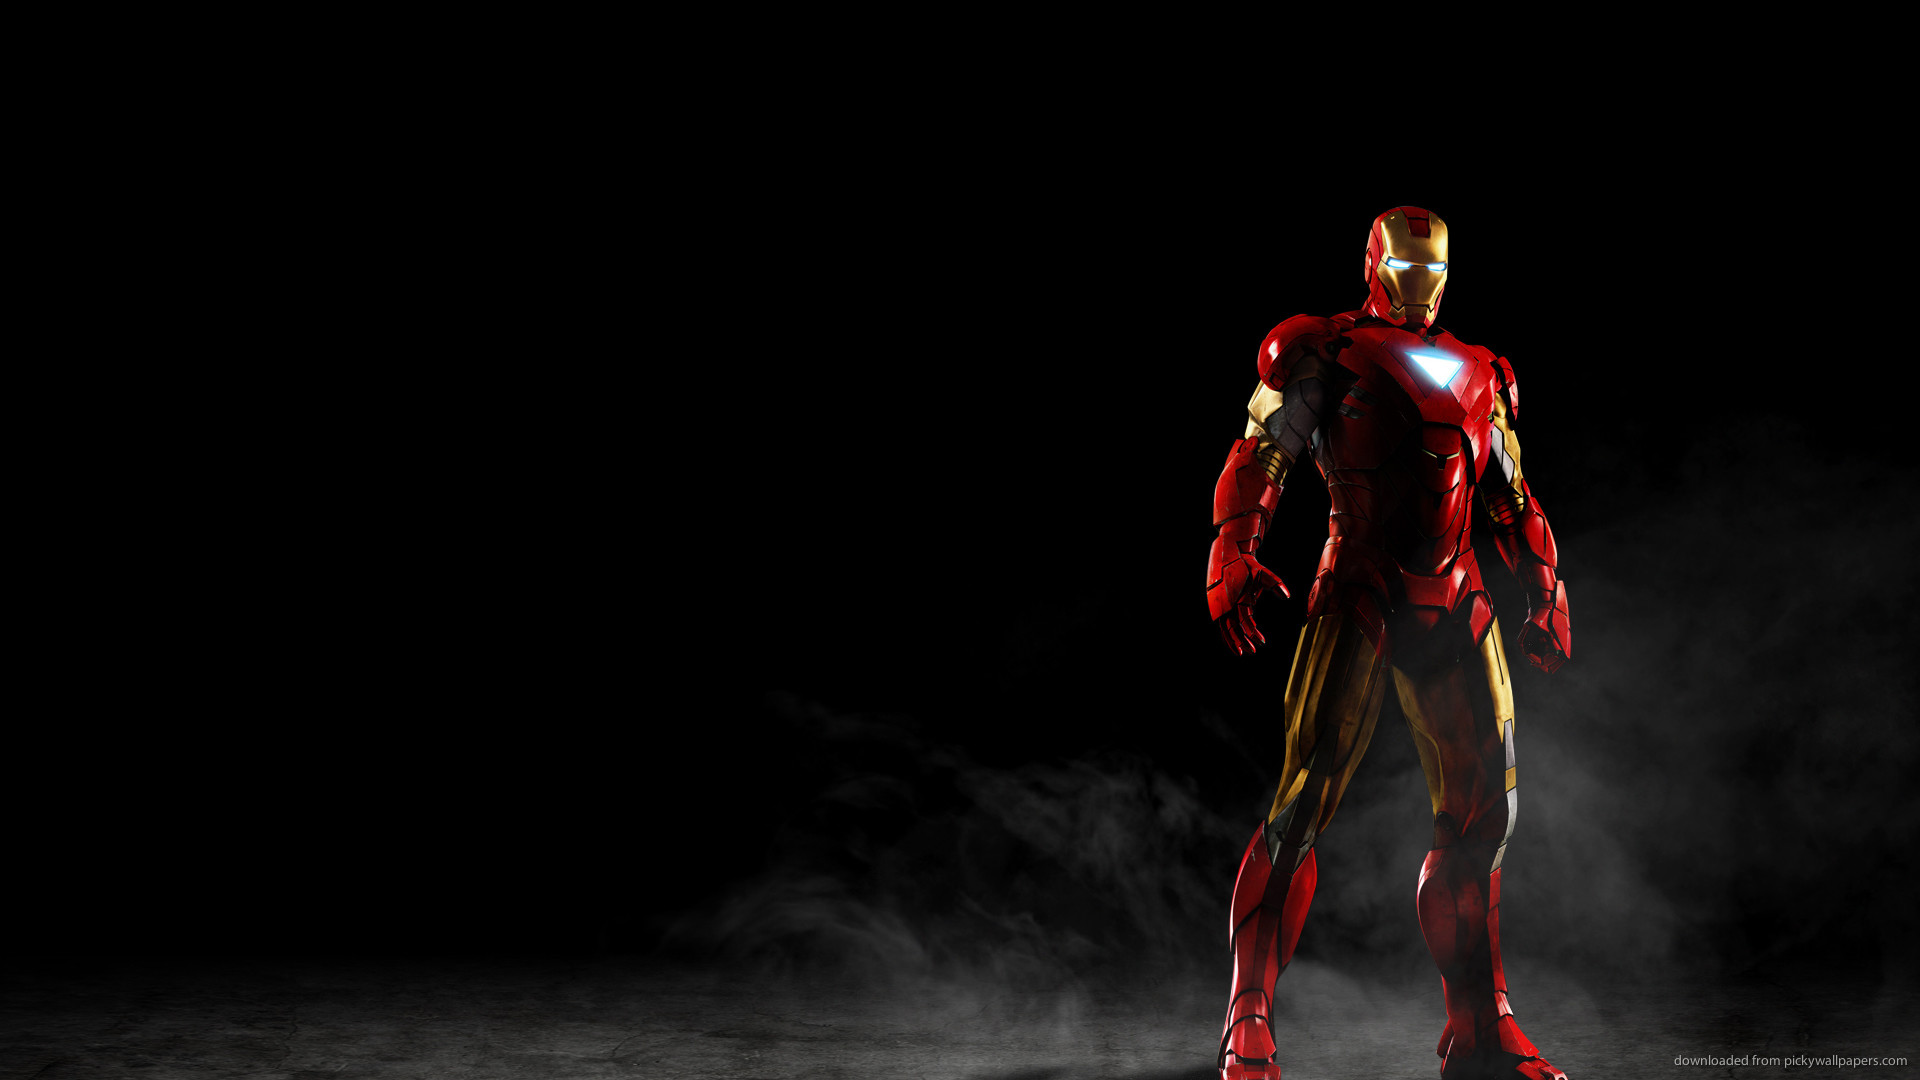 1920x1080 wallpaper.pickywallpapers.com//iron-man-battle-suit.